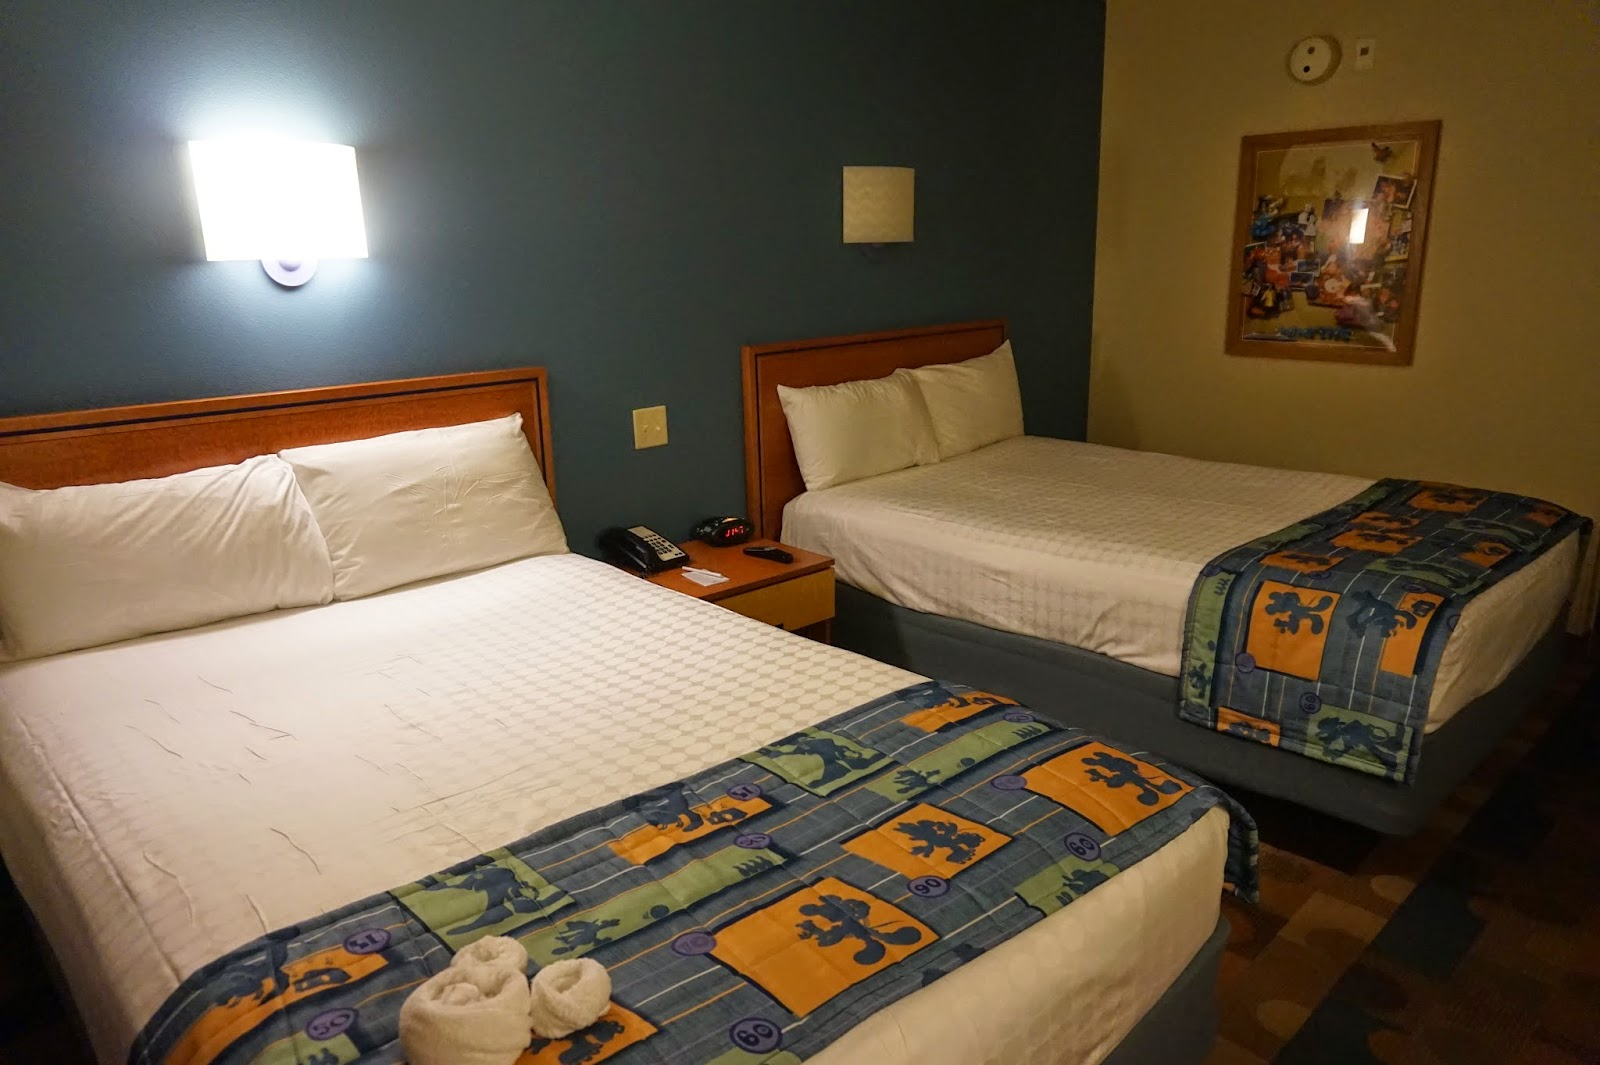 Cosmos mariners destination unknown search results for pop century mickey towels characters on the bedding and collages on the walls pop centurys fun rooms publicscrutiny Images